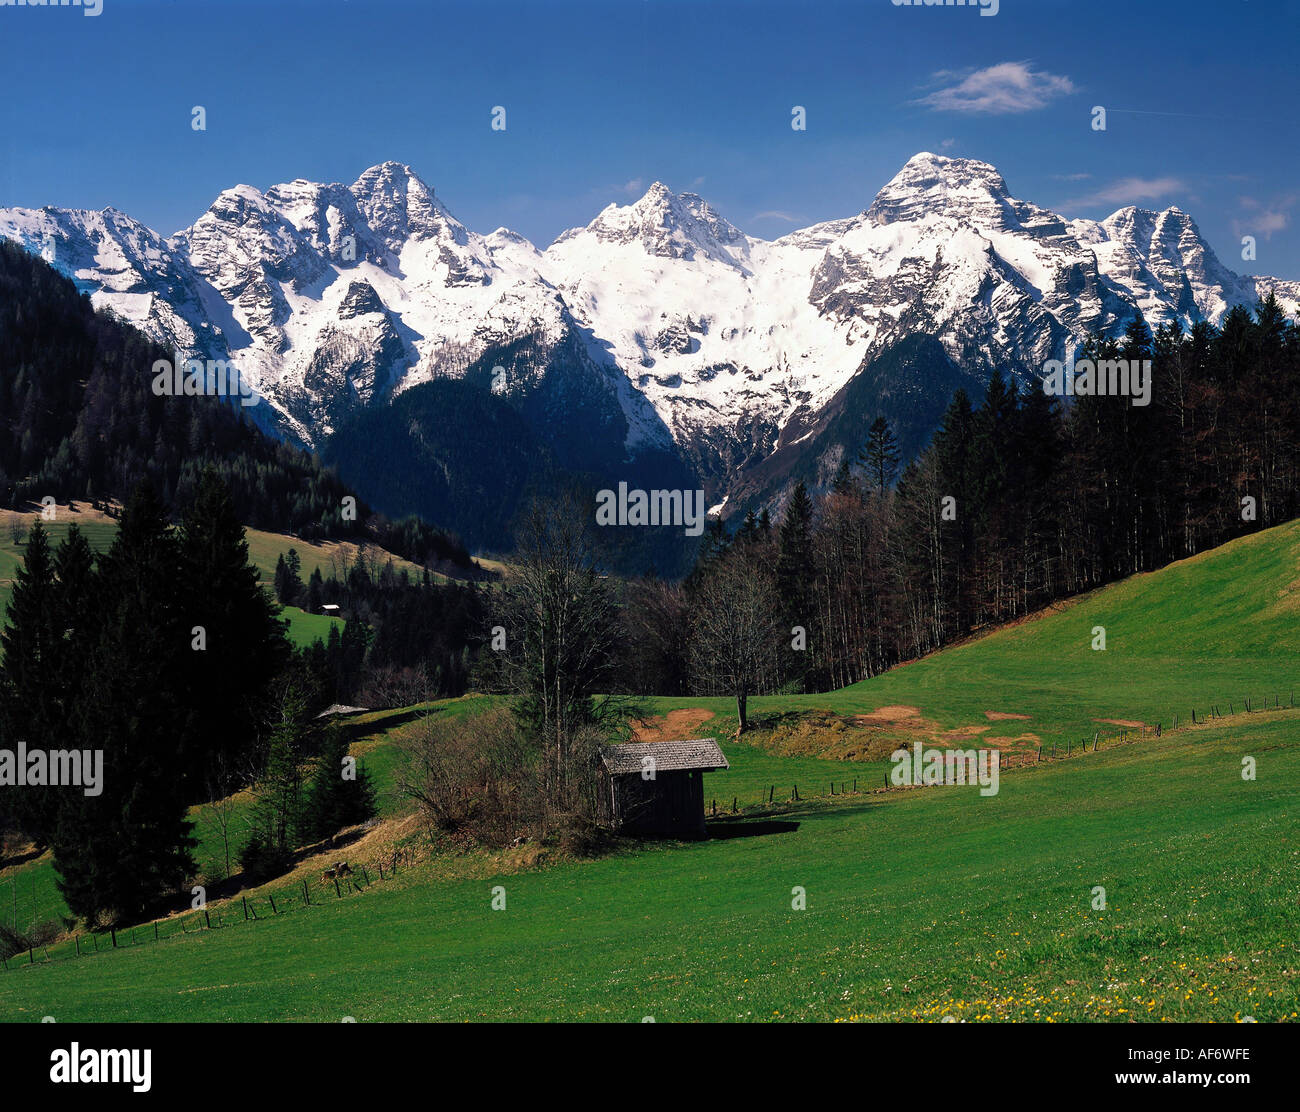 geo allg berge gebirge sterreich salzburg loferer stock photo royalty free image. Black Bedroom Furniture Sets. Home Design Ideas